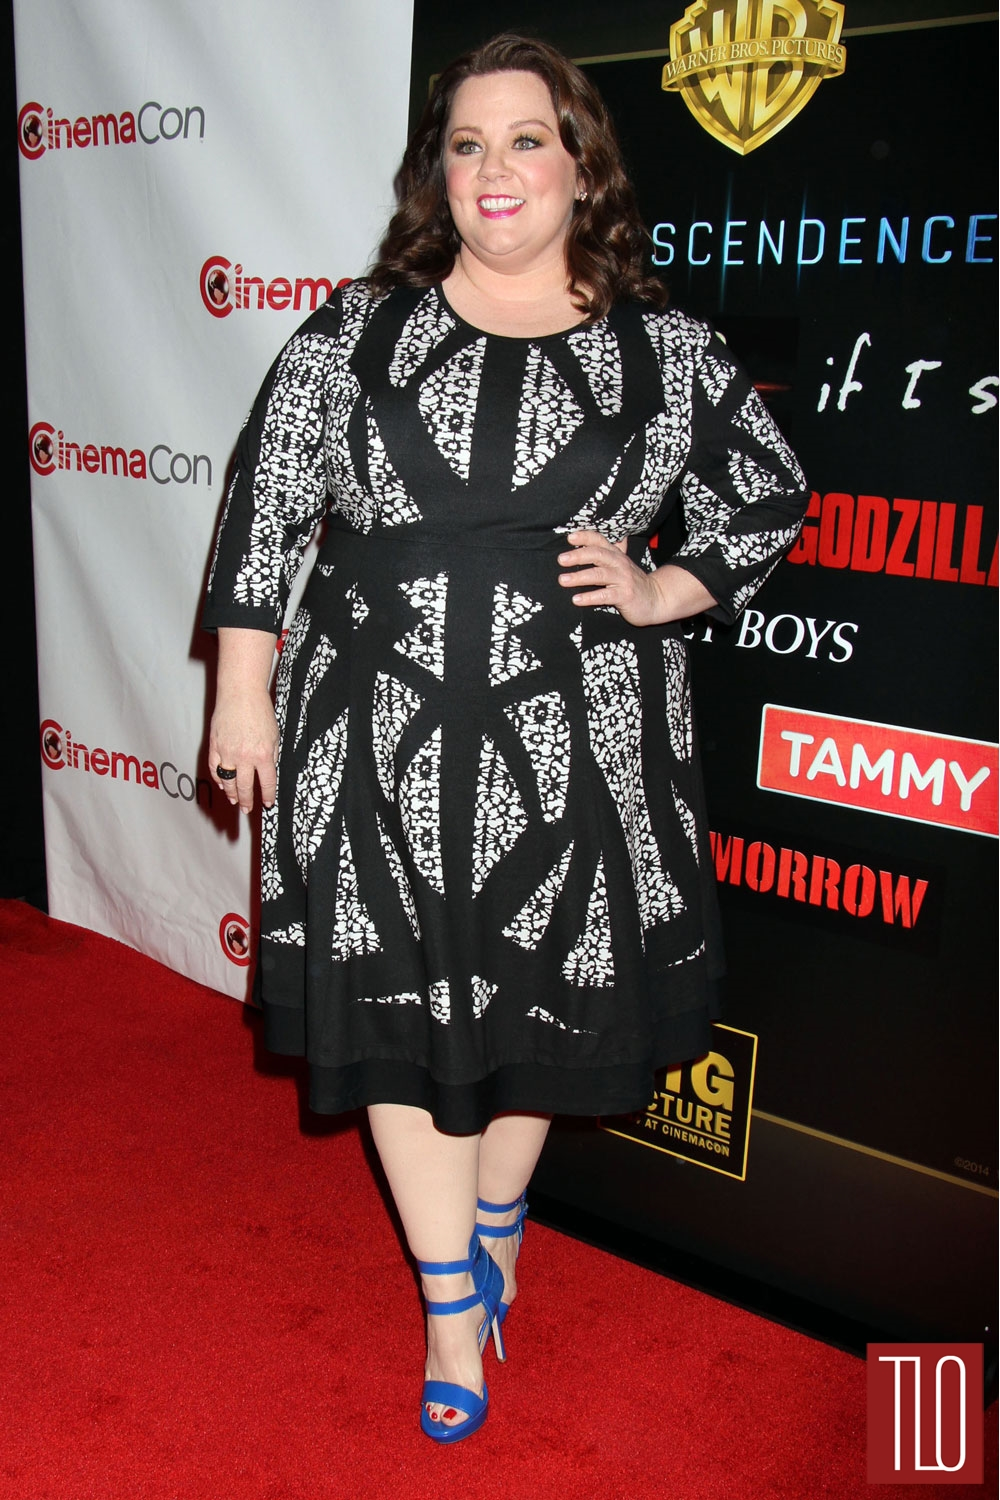 Melissa-McCarthy-CinemaCon-2014-Warner-Bros-Eloquii-Tom-Lorenzo-Site-TLO (1)